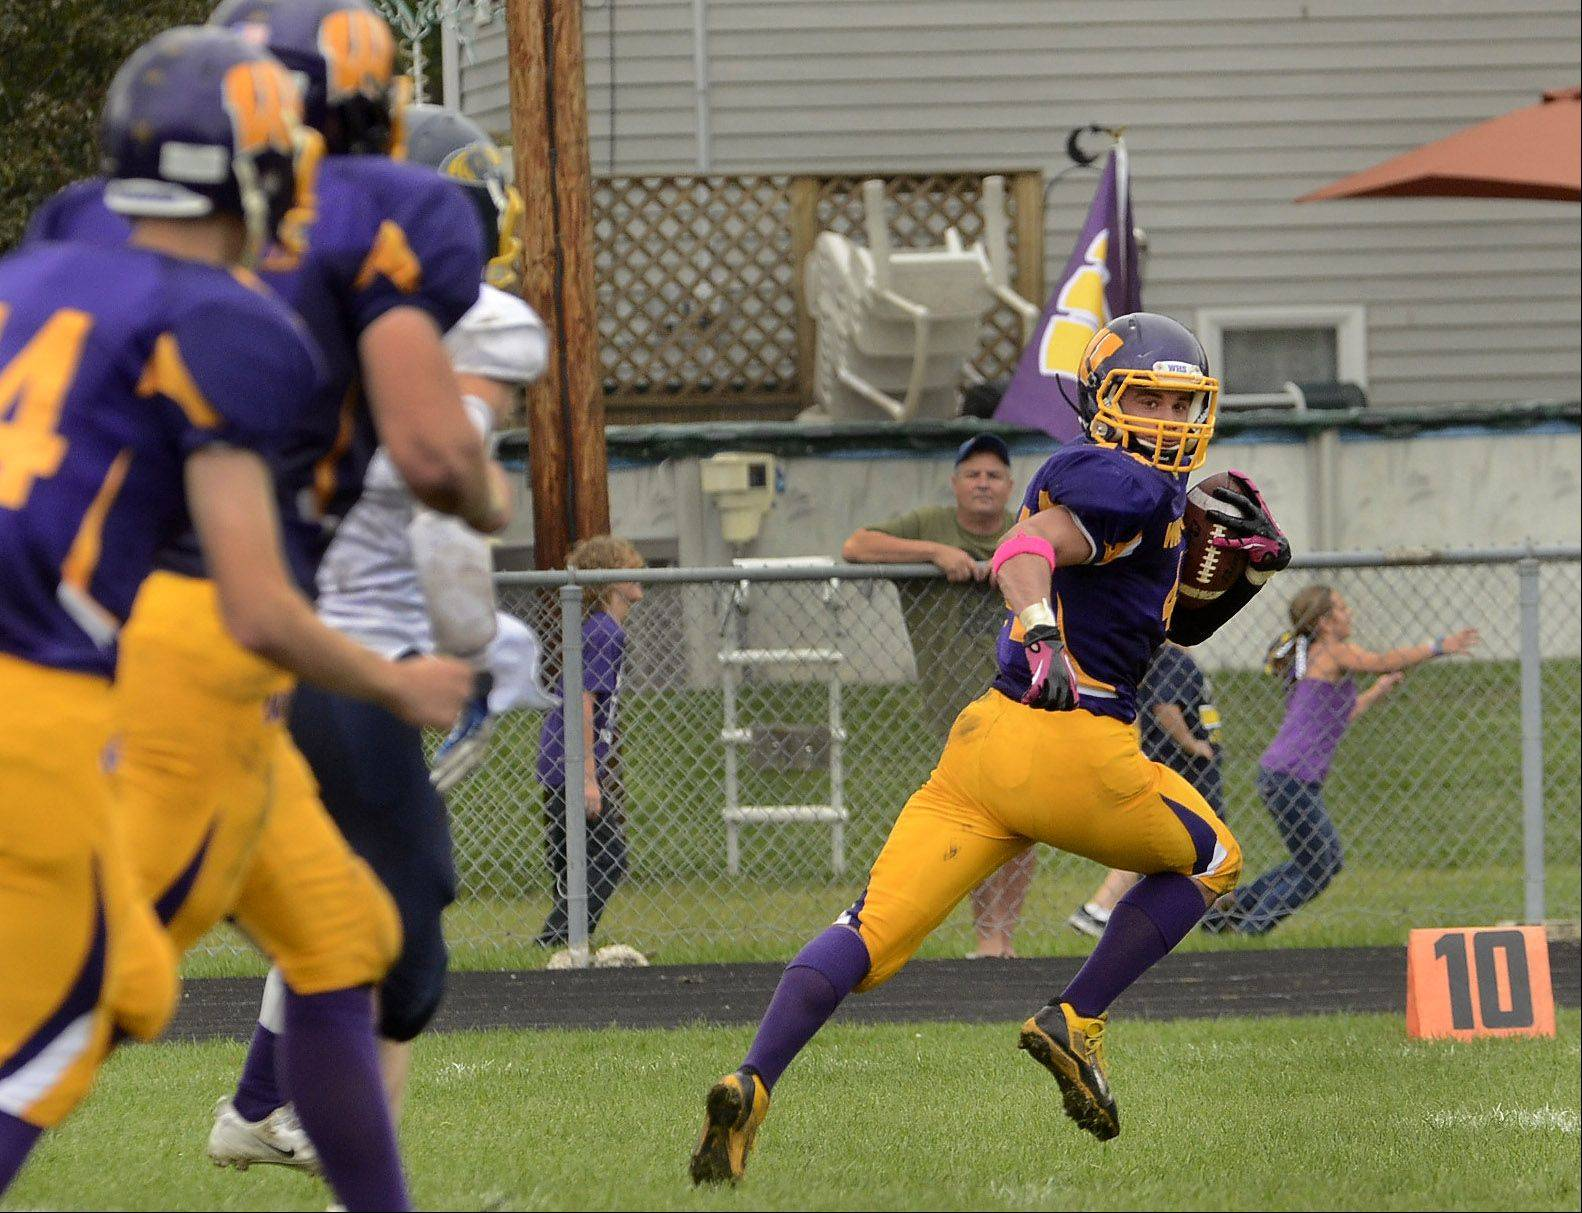 Michael Prate of Wauconda is off to the races on his way to his first touchdown against Round Lake on Saturday.